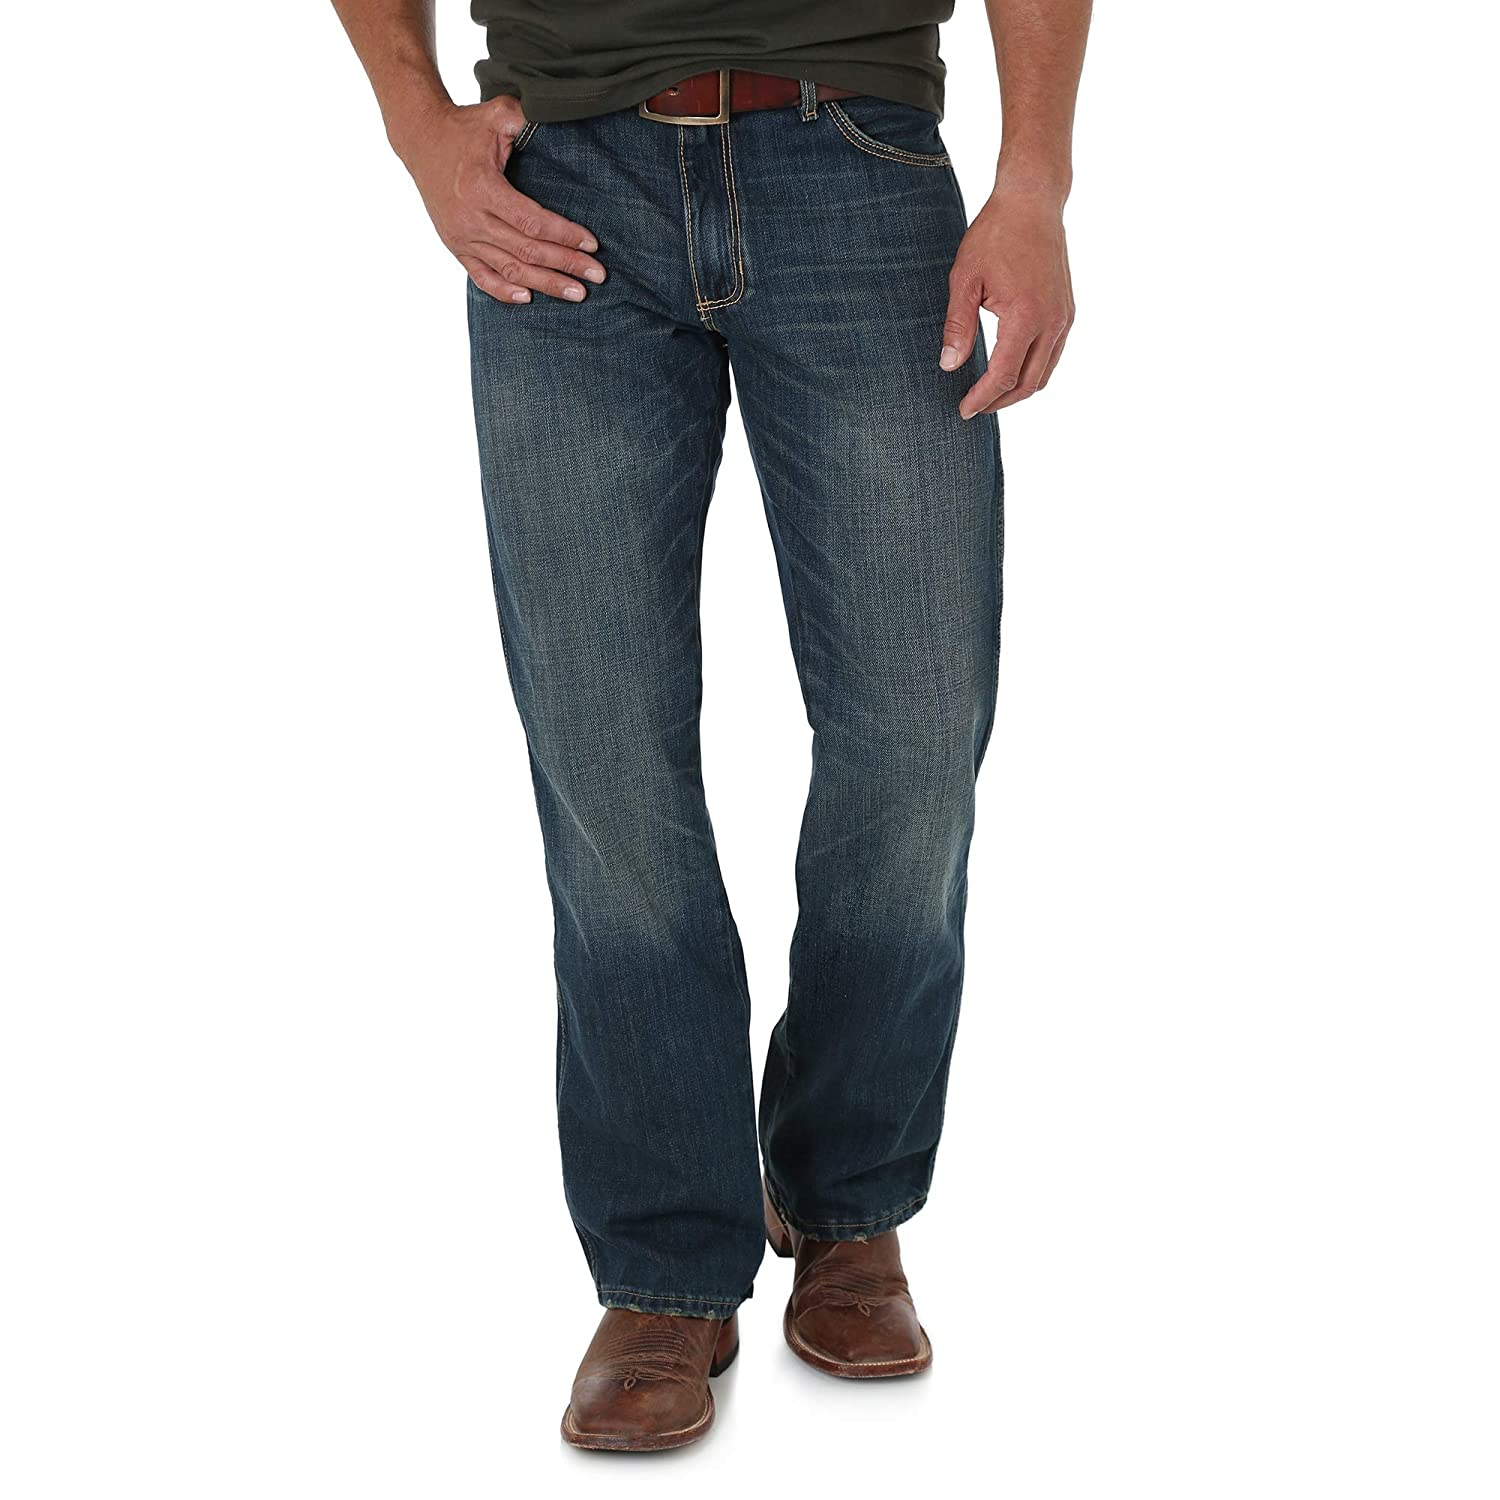 1802bd8e Wrangler Men's Retro Slim-Fit Bootcut Jean: Amazon.ca: Clothing &  Accessories